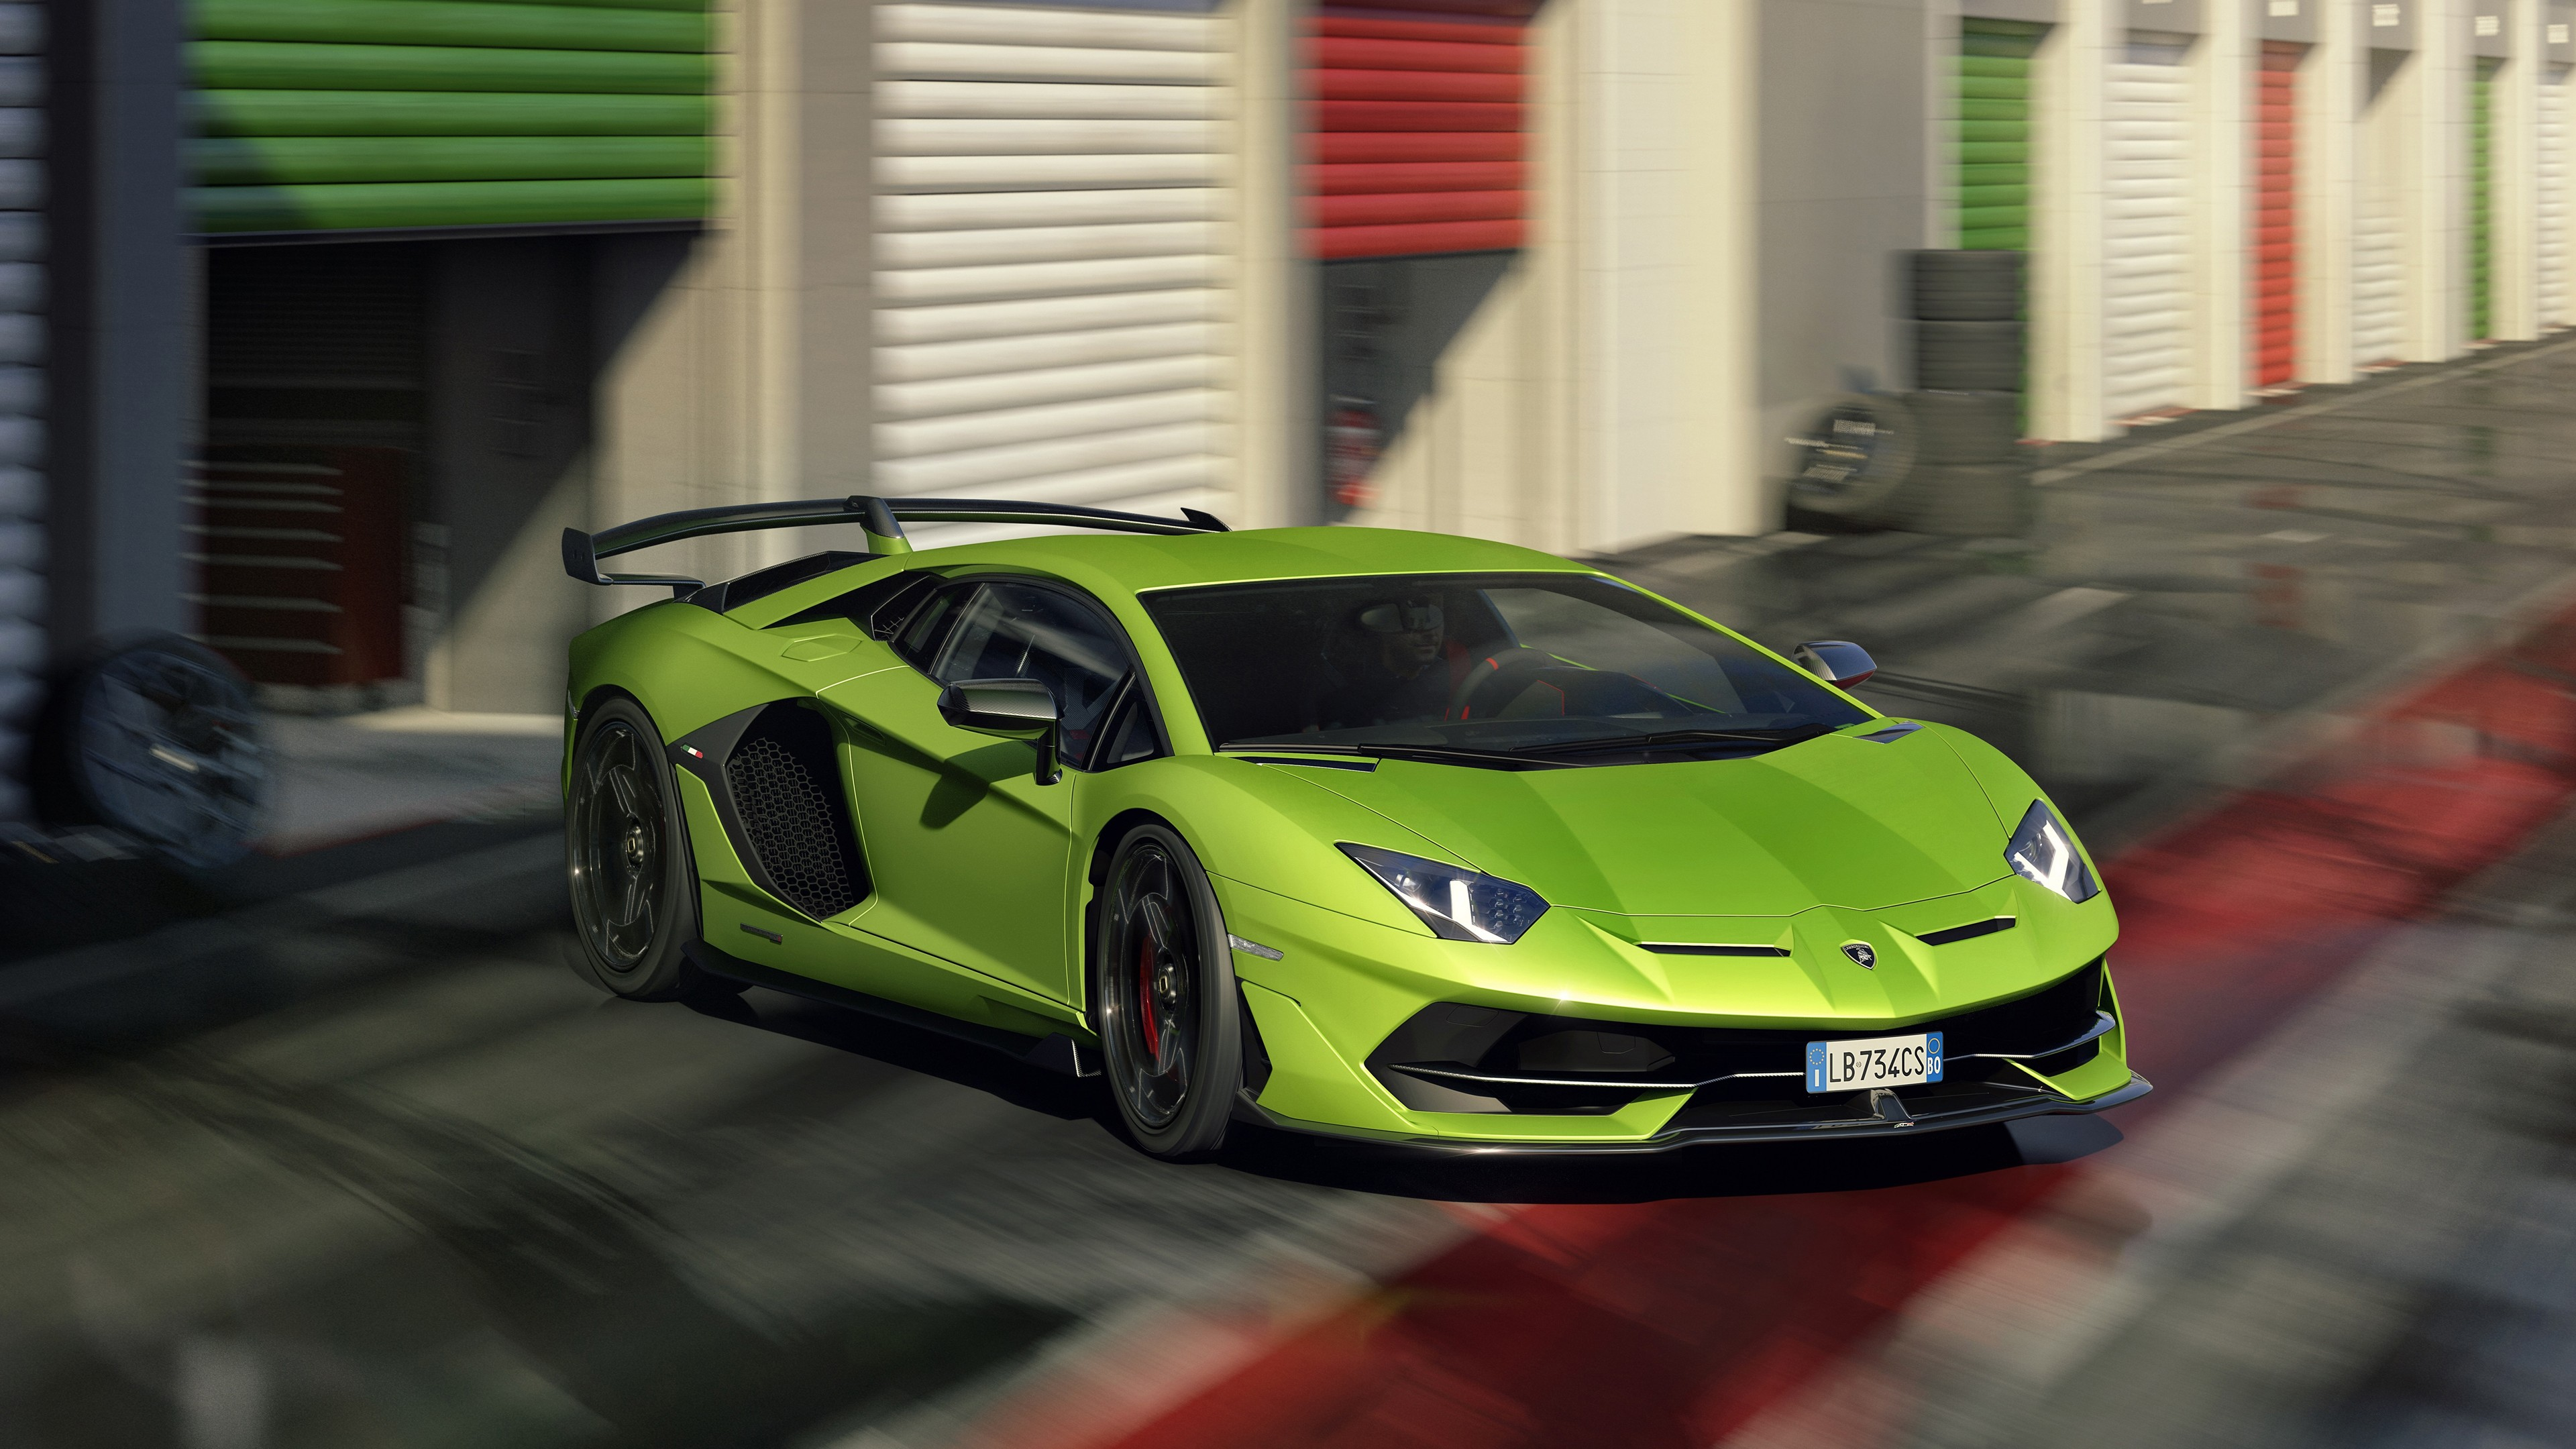 2019 Lamborghini Aventador Svj 4k 5 Wallpaper Hd Car